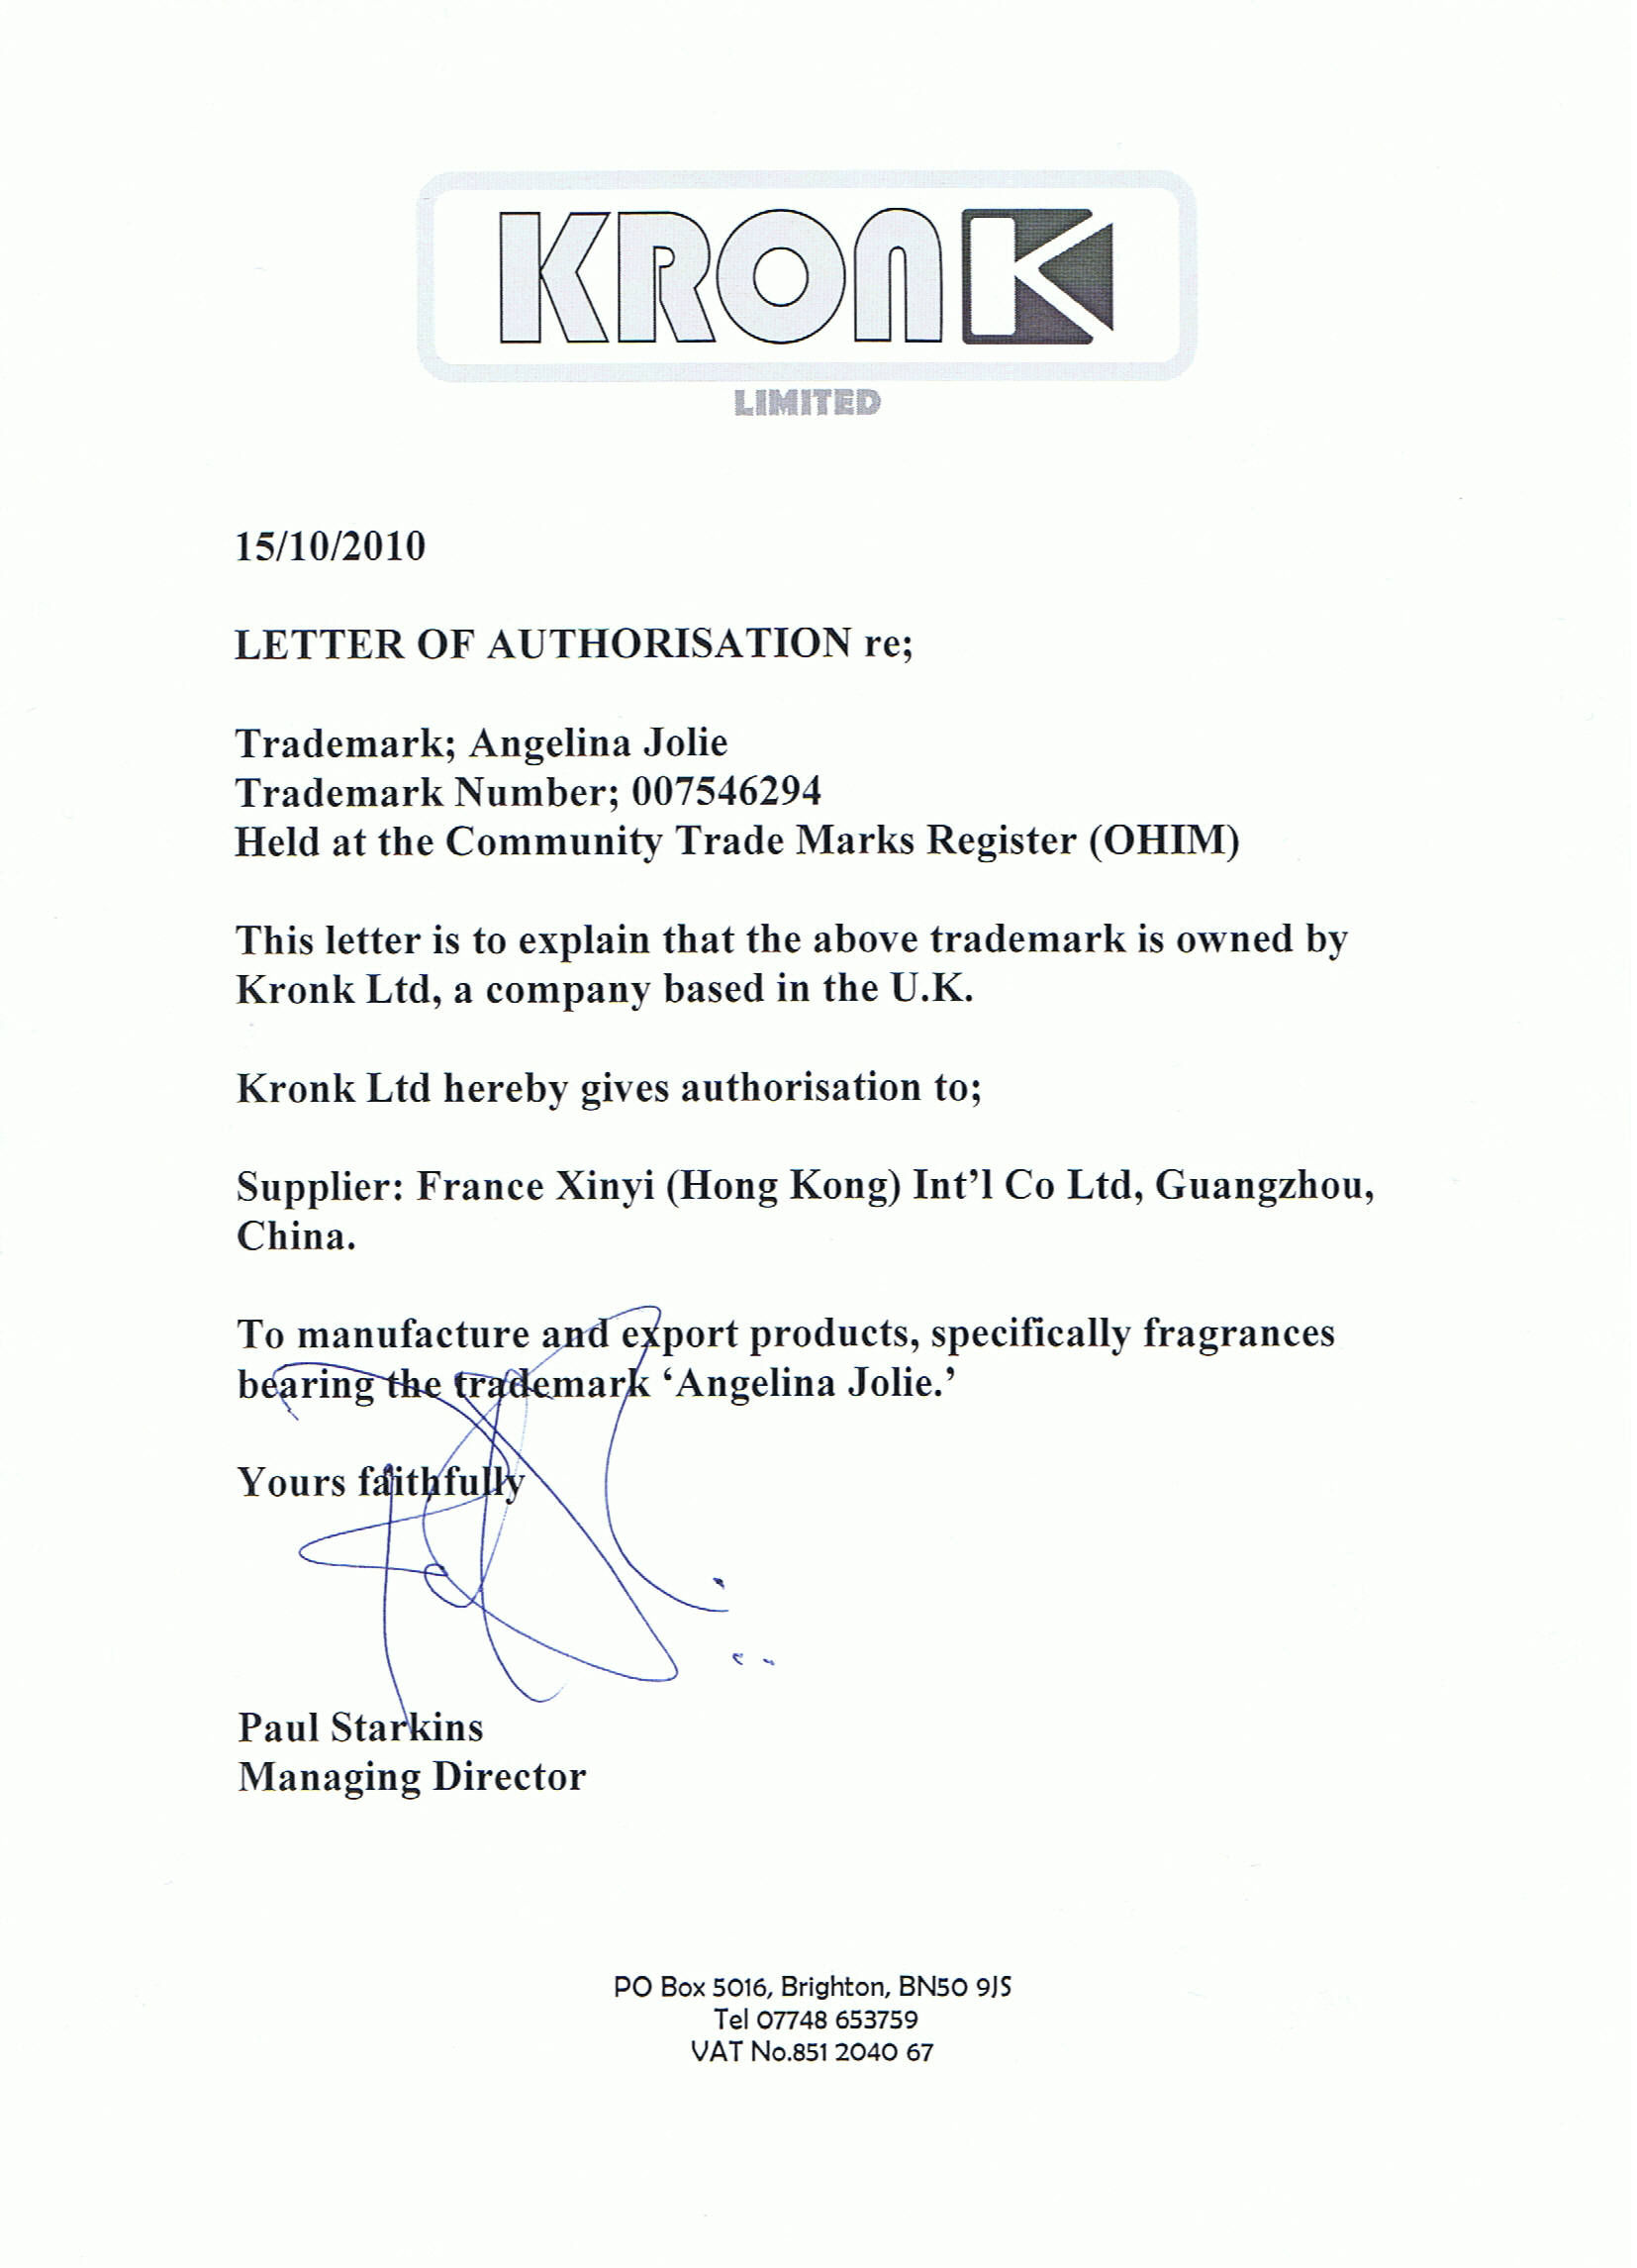 Letter of Authoration